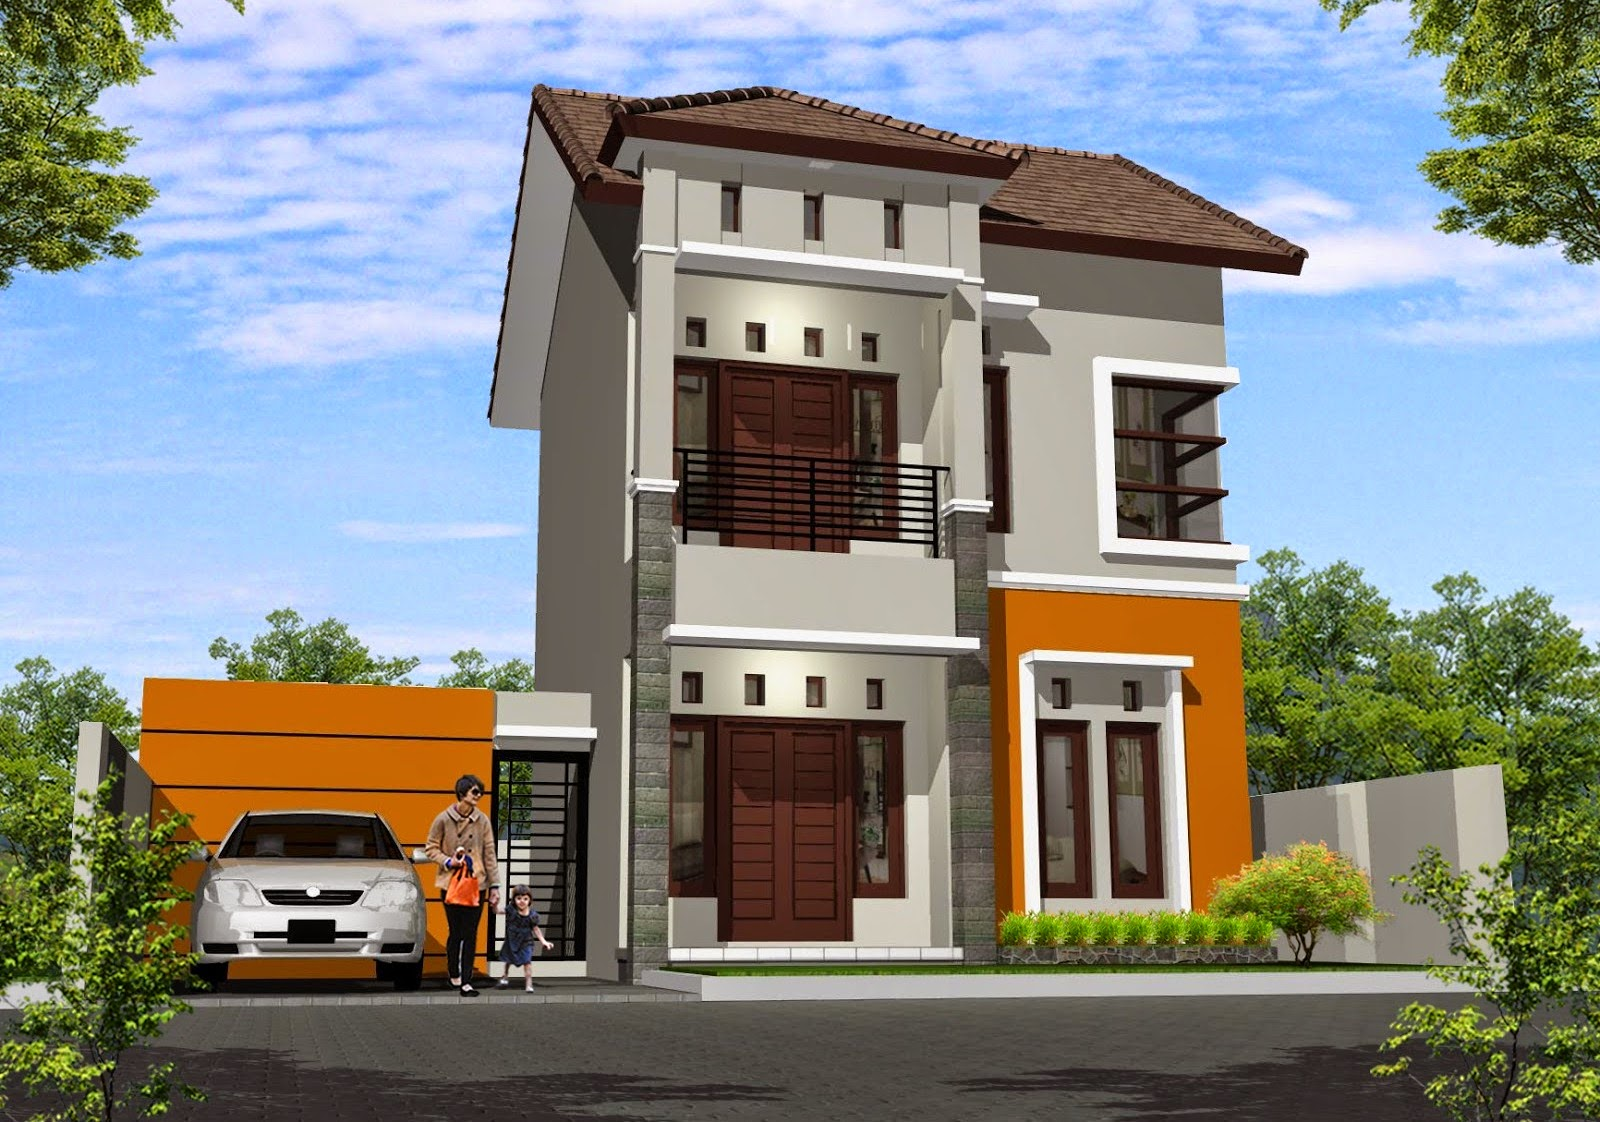 Minimalist House Color - Basically a minimalist house type 54 design images is quite important for users because without pictorial object will be difficult to find inspiration